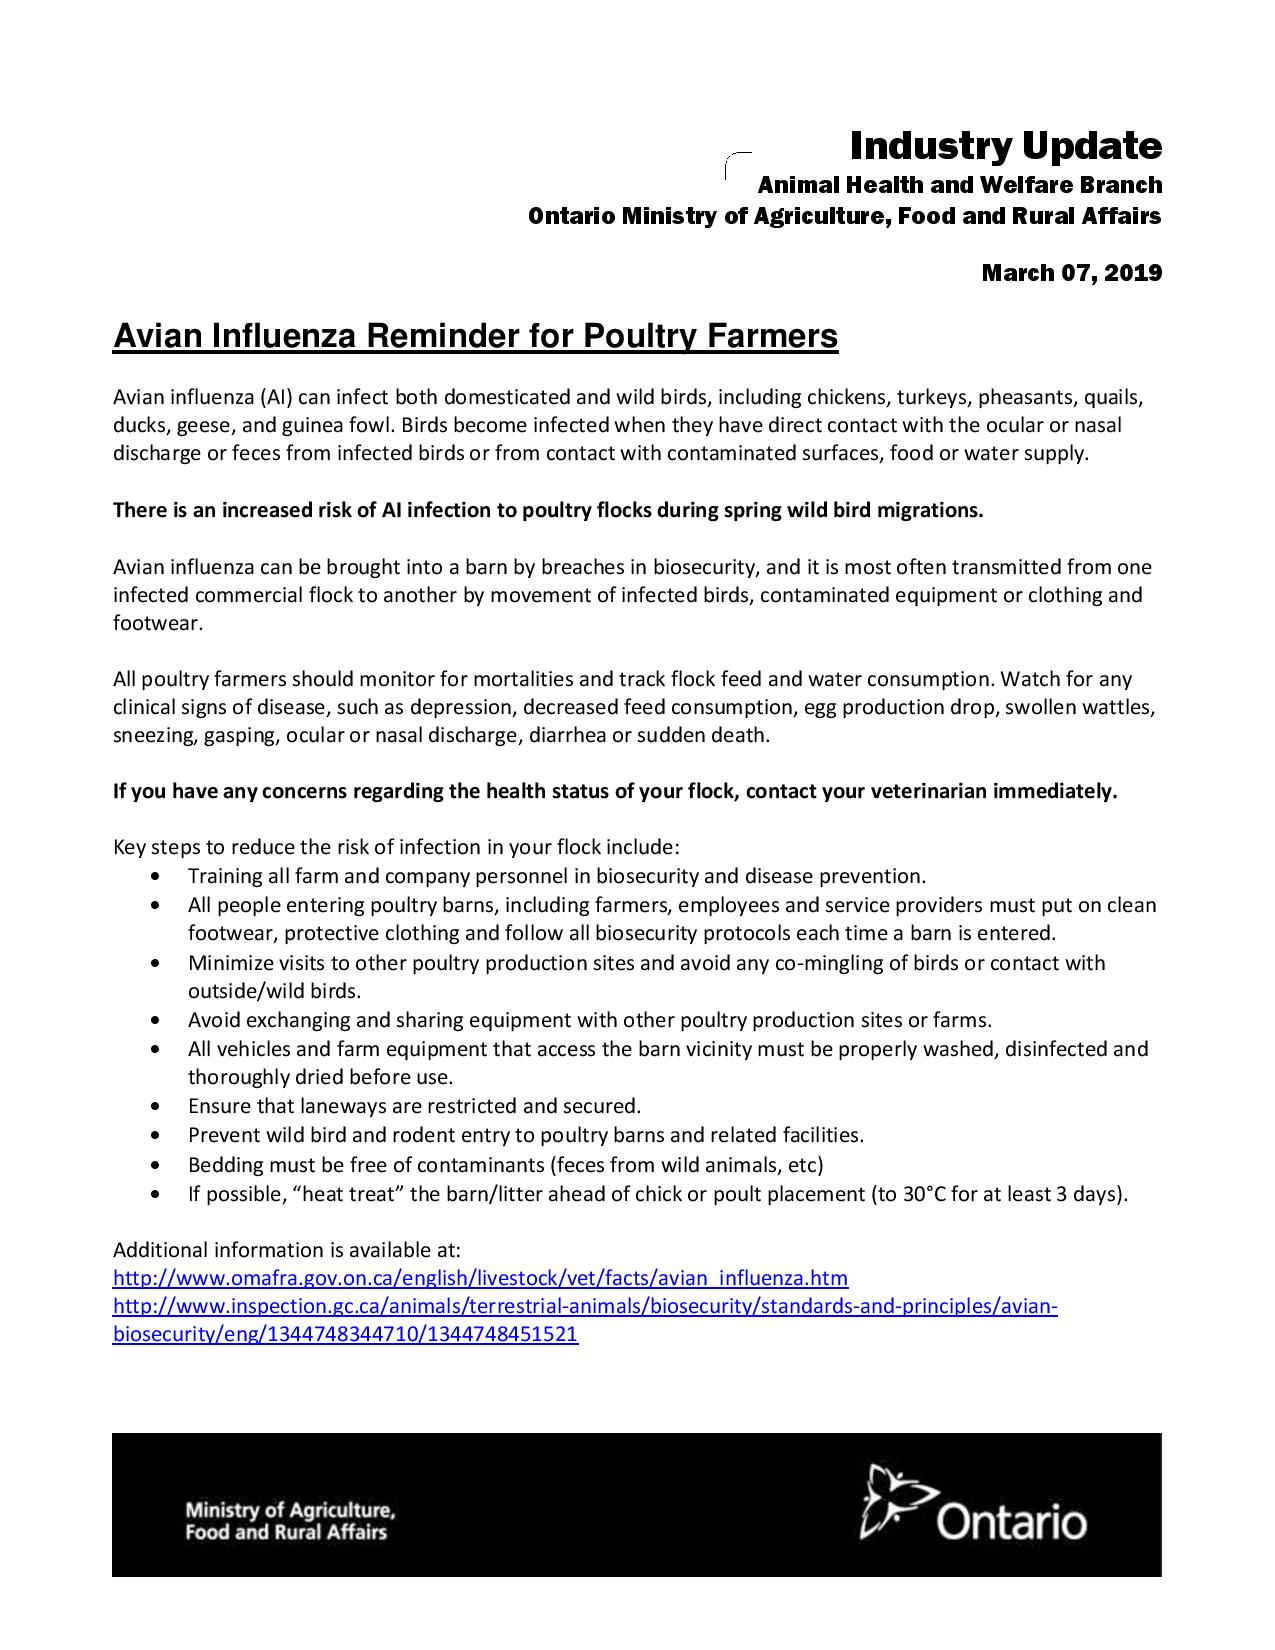 Avian Influenza Reminder for Poultry Farmers - Ontario Animal Health